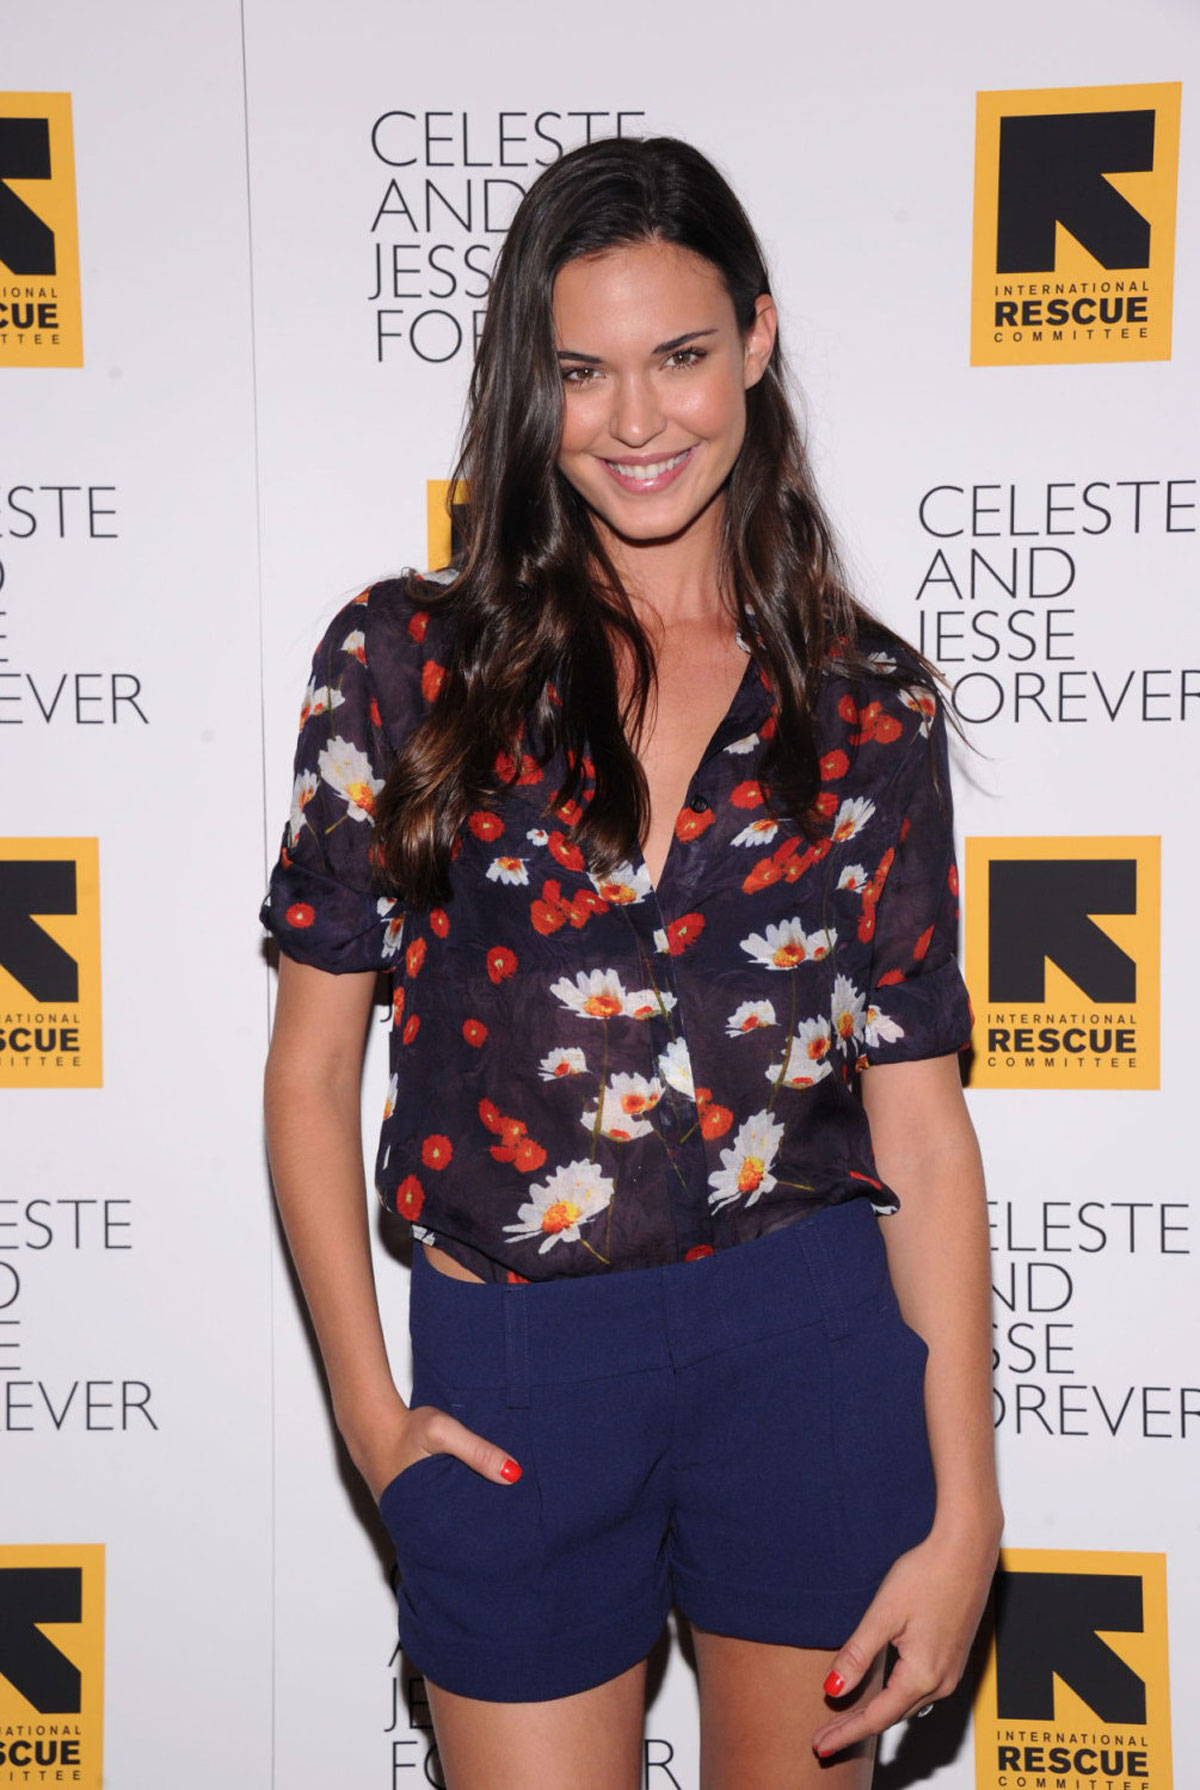 ODETTE ANNABLE at Celeste and Jesse Forever Premiere in ...